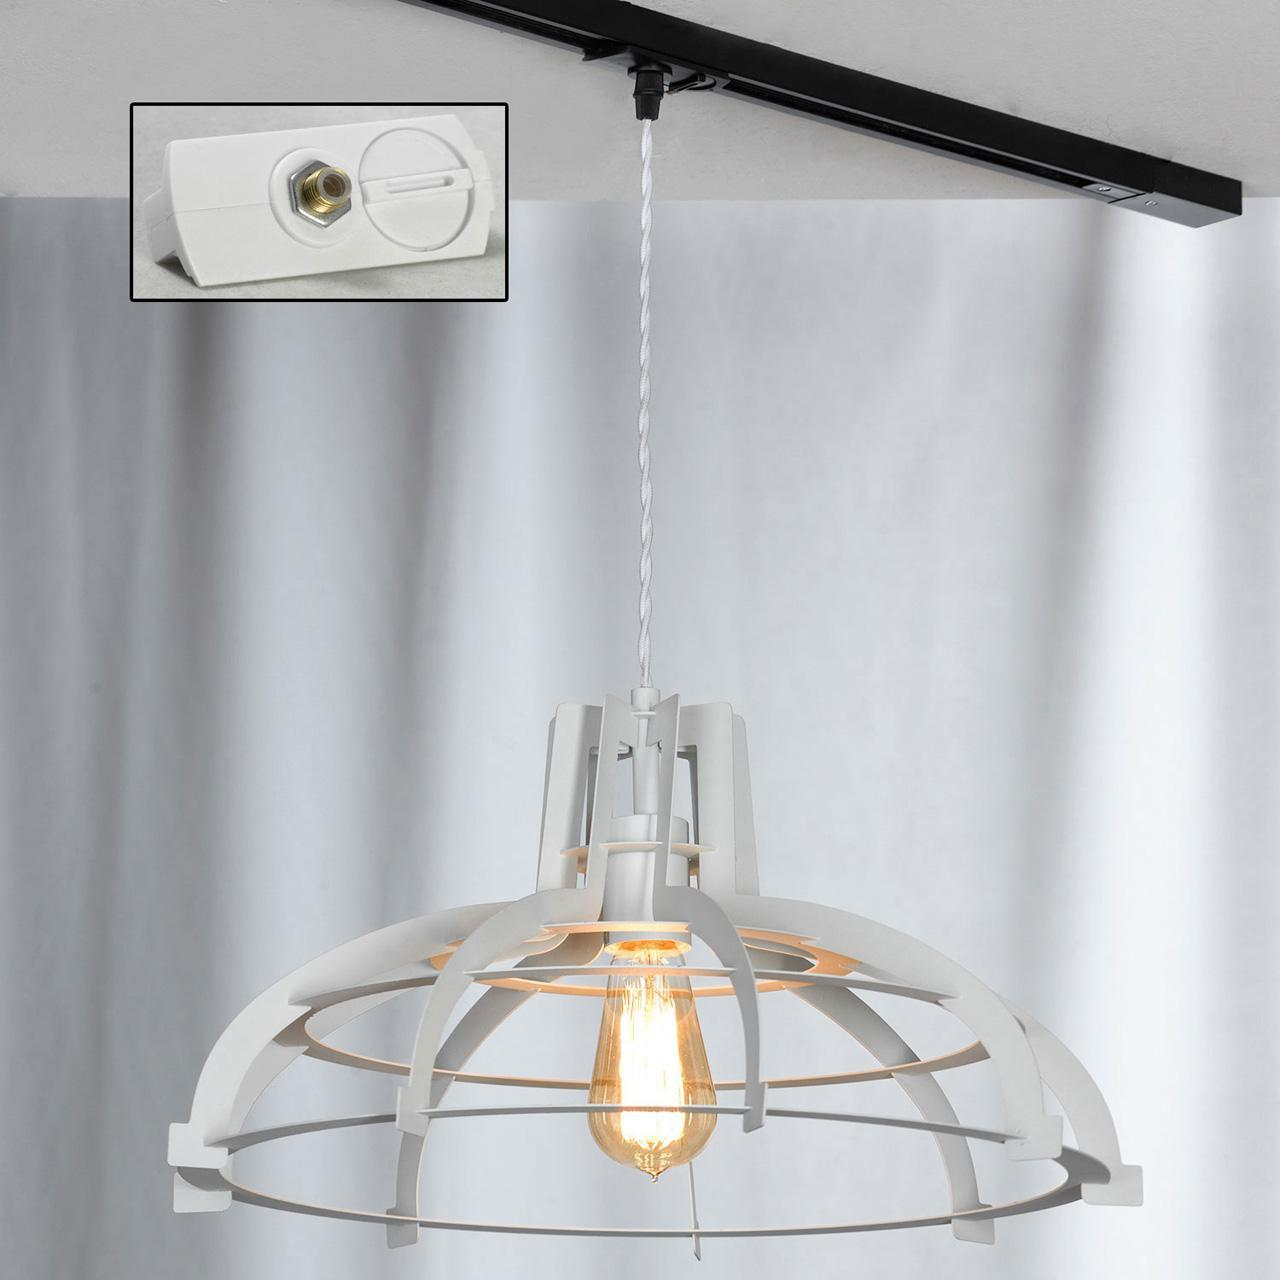 Трековый светильник однофазный Lussole LOFT Track Lights LSP-9944-TAW edison bulb loft style vintage pendant industrial light lamp with 3 lights for dining room